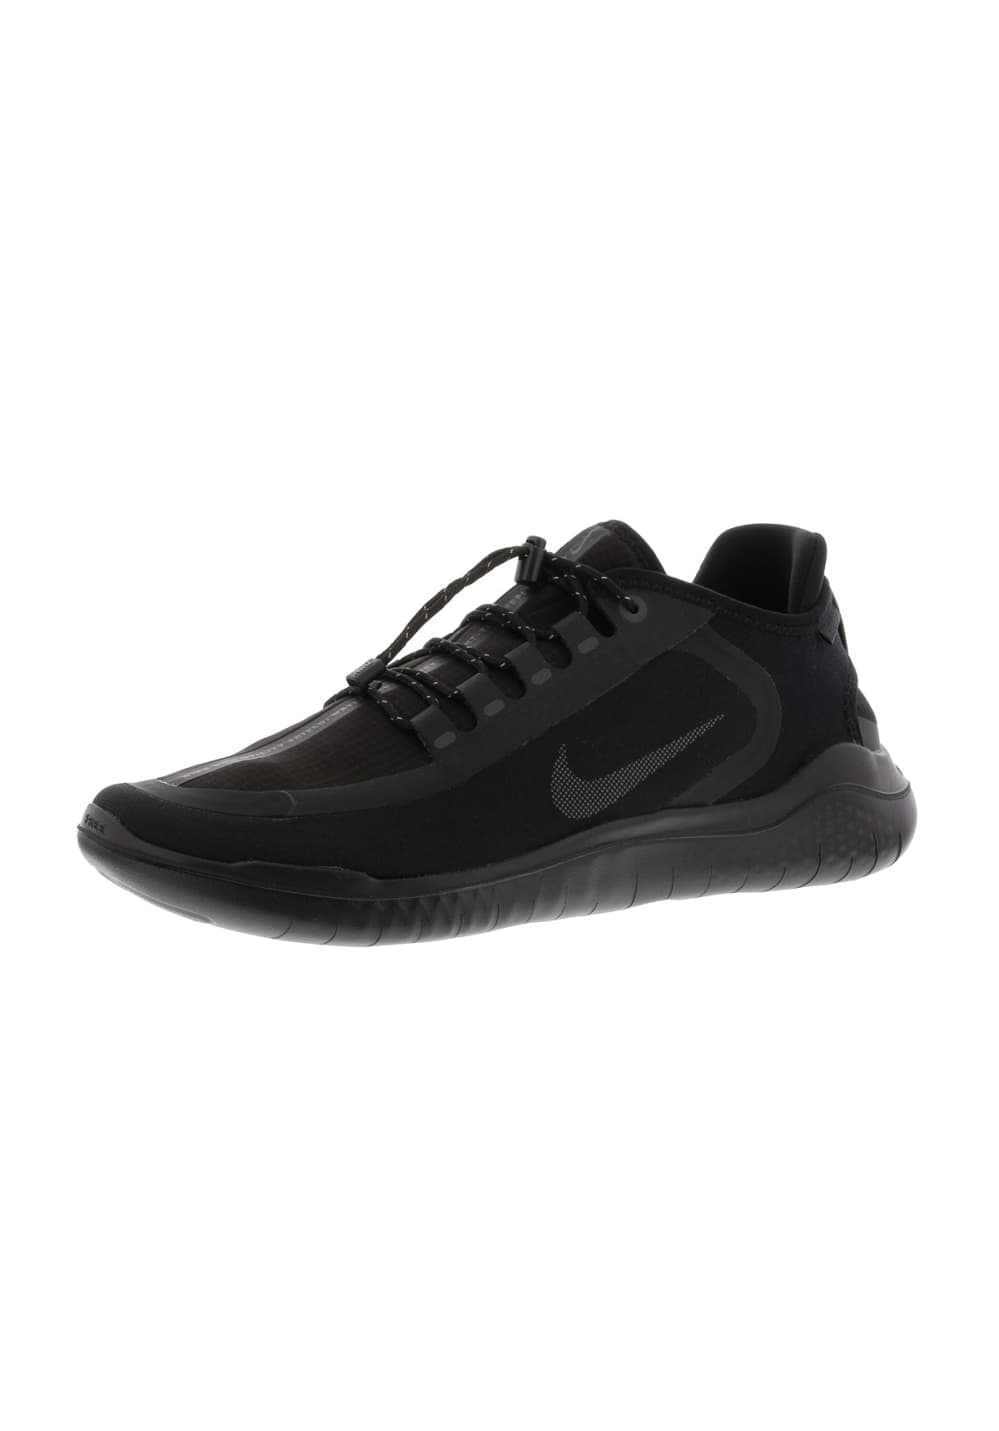 10b63cb8b431a0 Next. -50%. This product is currently out of stock. Nike. Free Rn 2018  Shield - Running shoes for Men